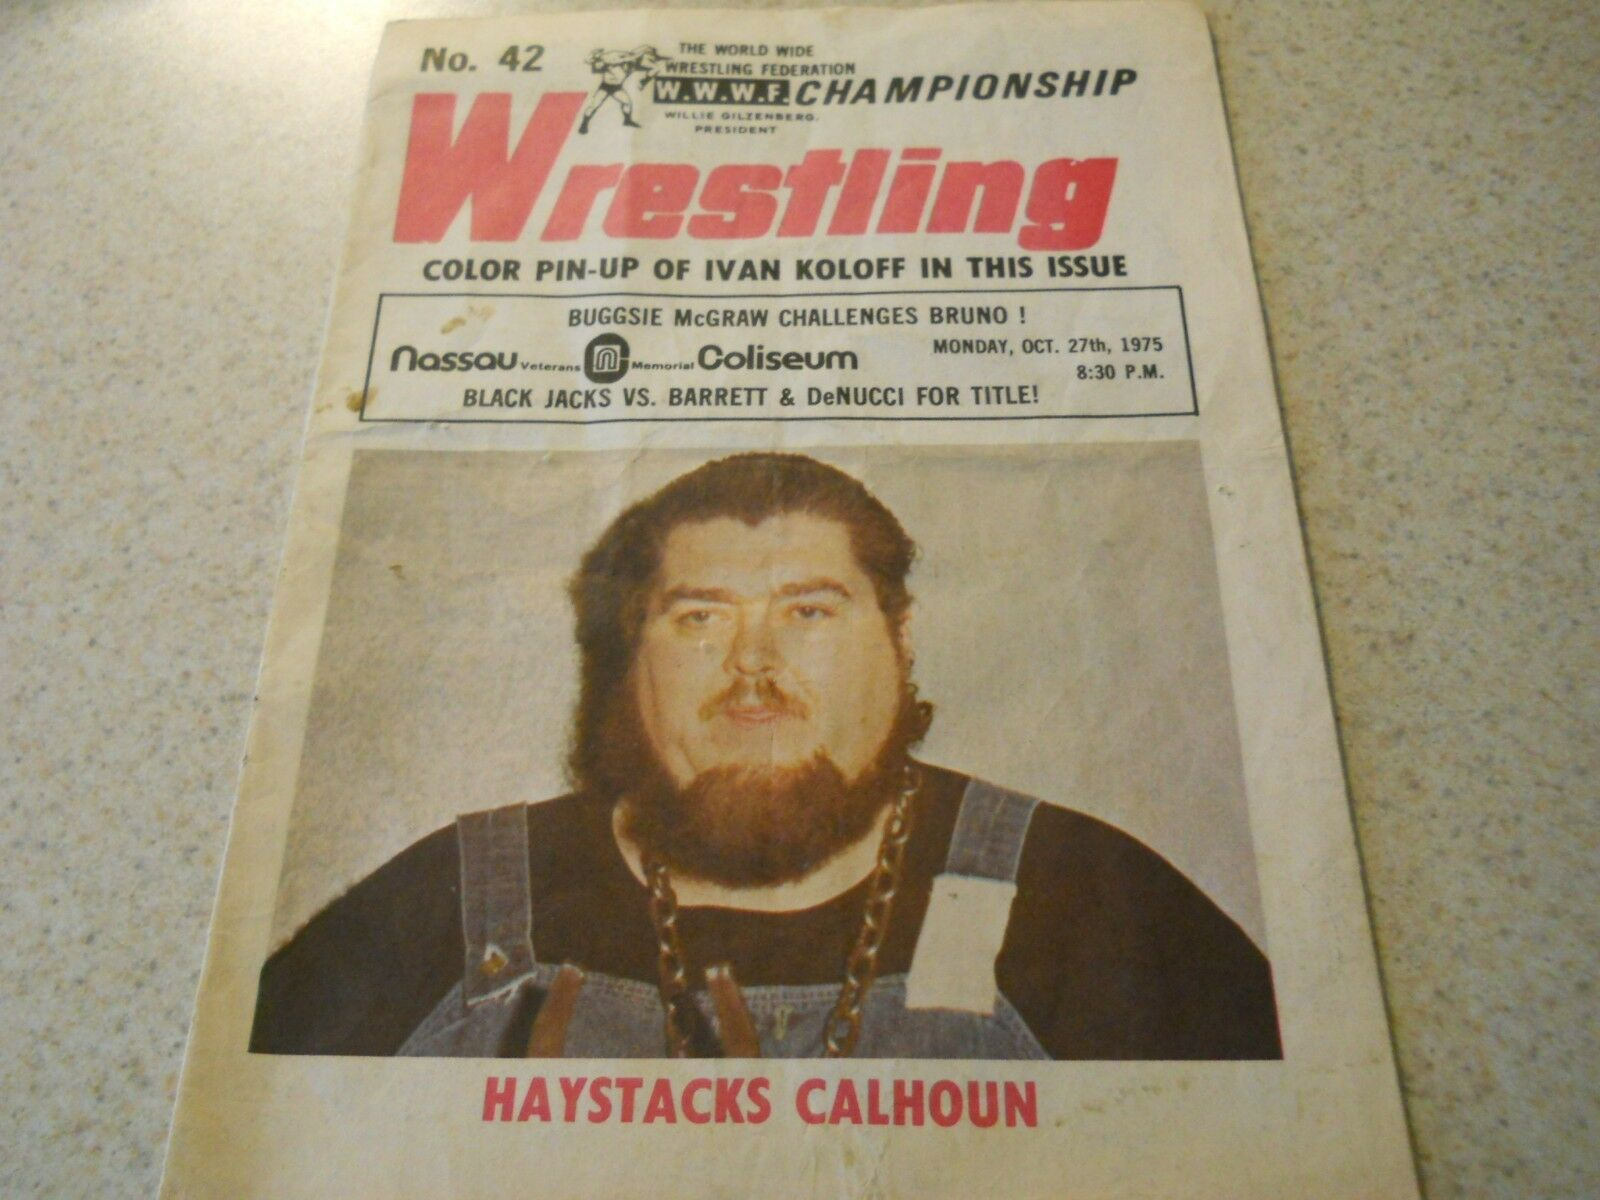 A WWWF poster hyping an upcoming show at Nassau Coliseum featuring Haystacks Calhoun, Buggsie McGraw, Bruno Sammartino, and more.